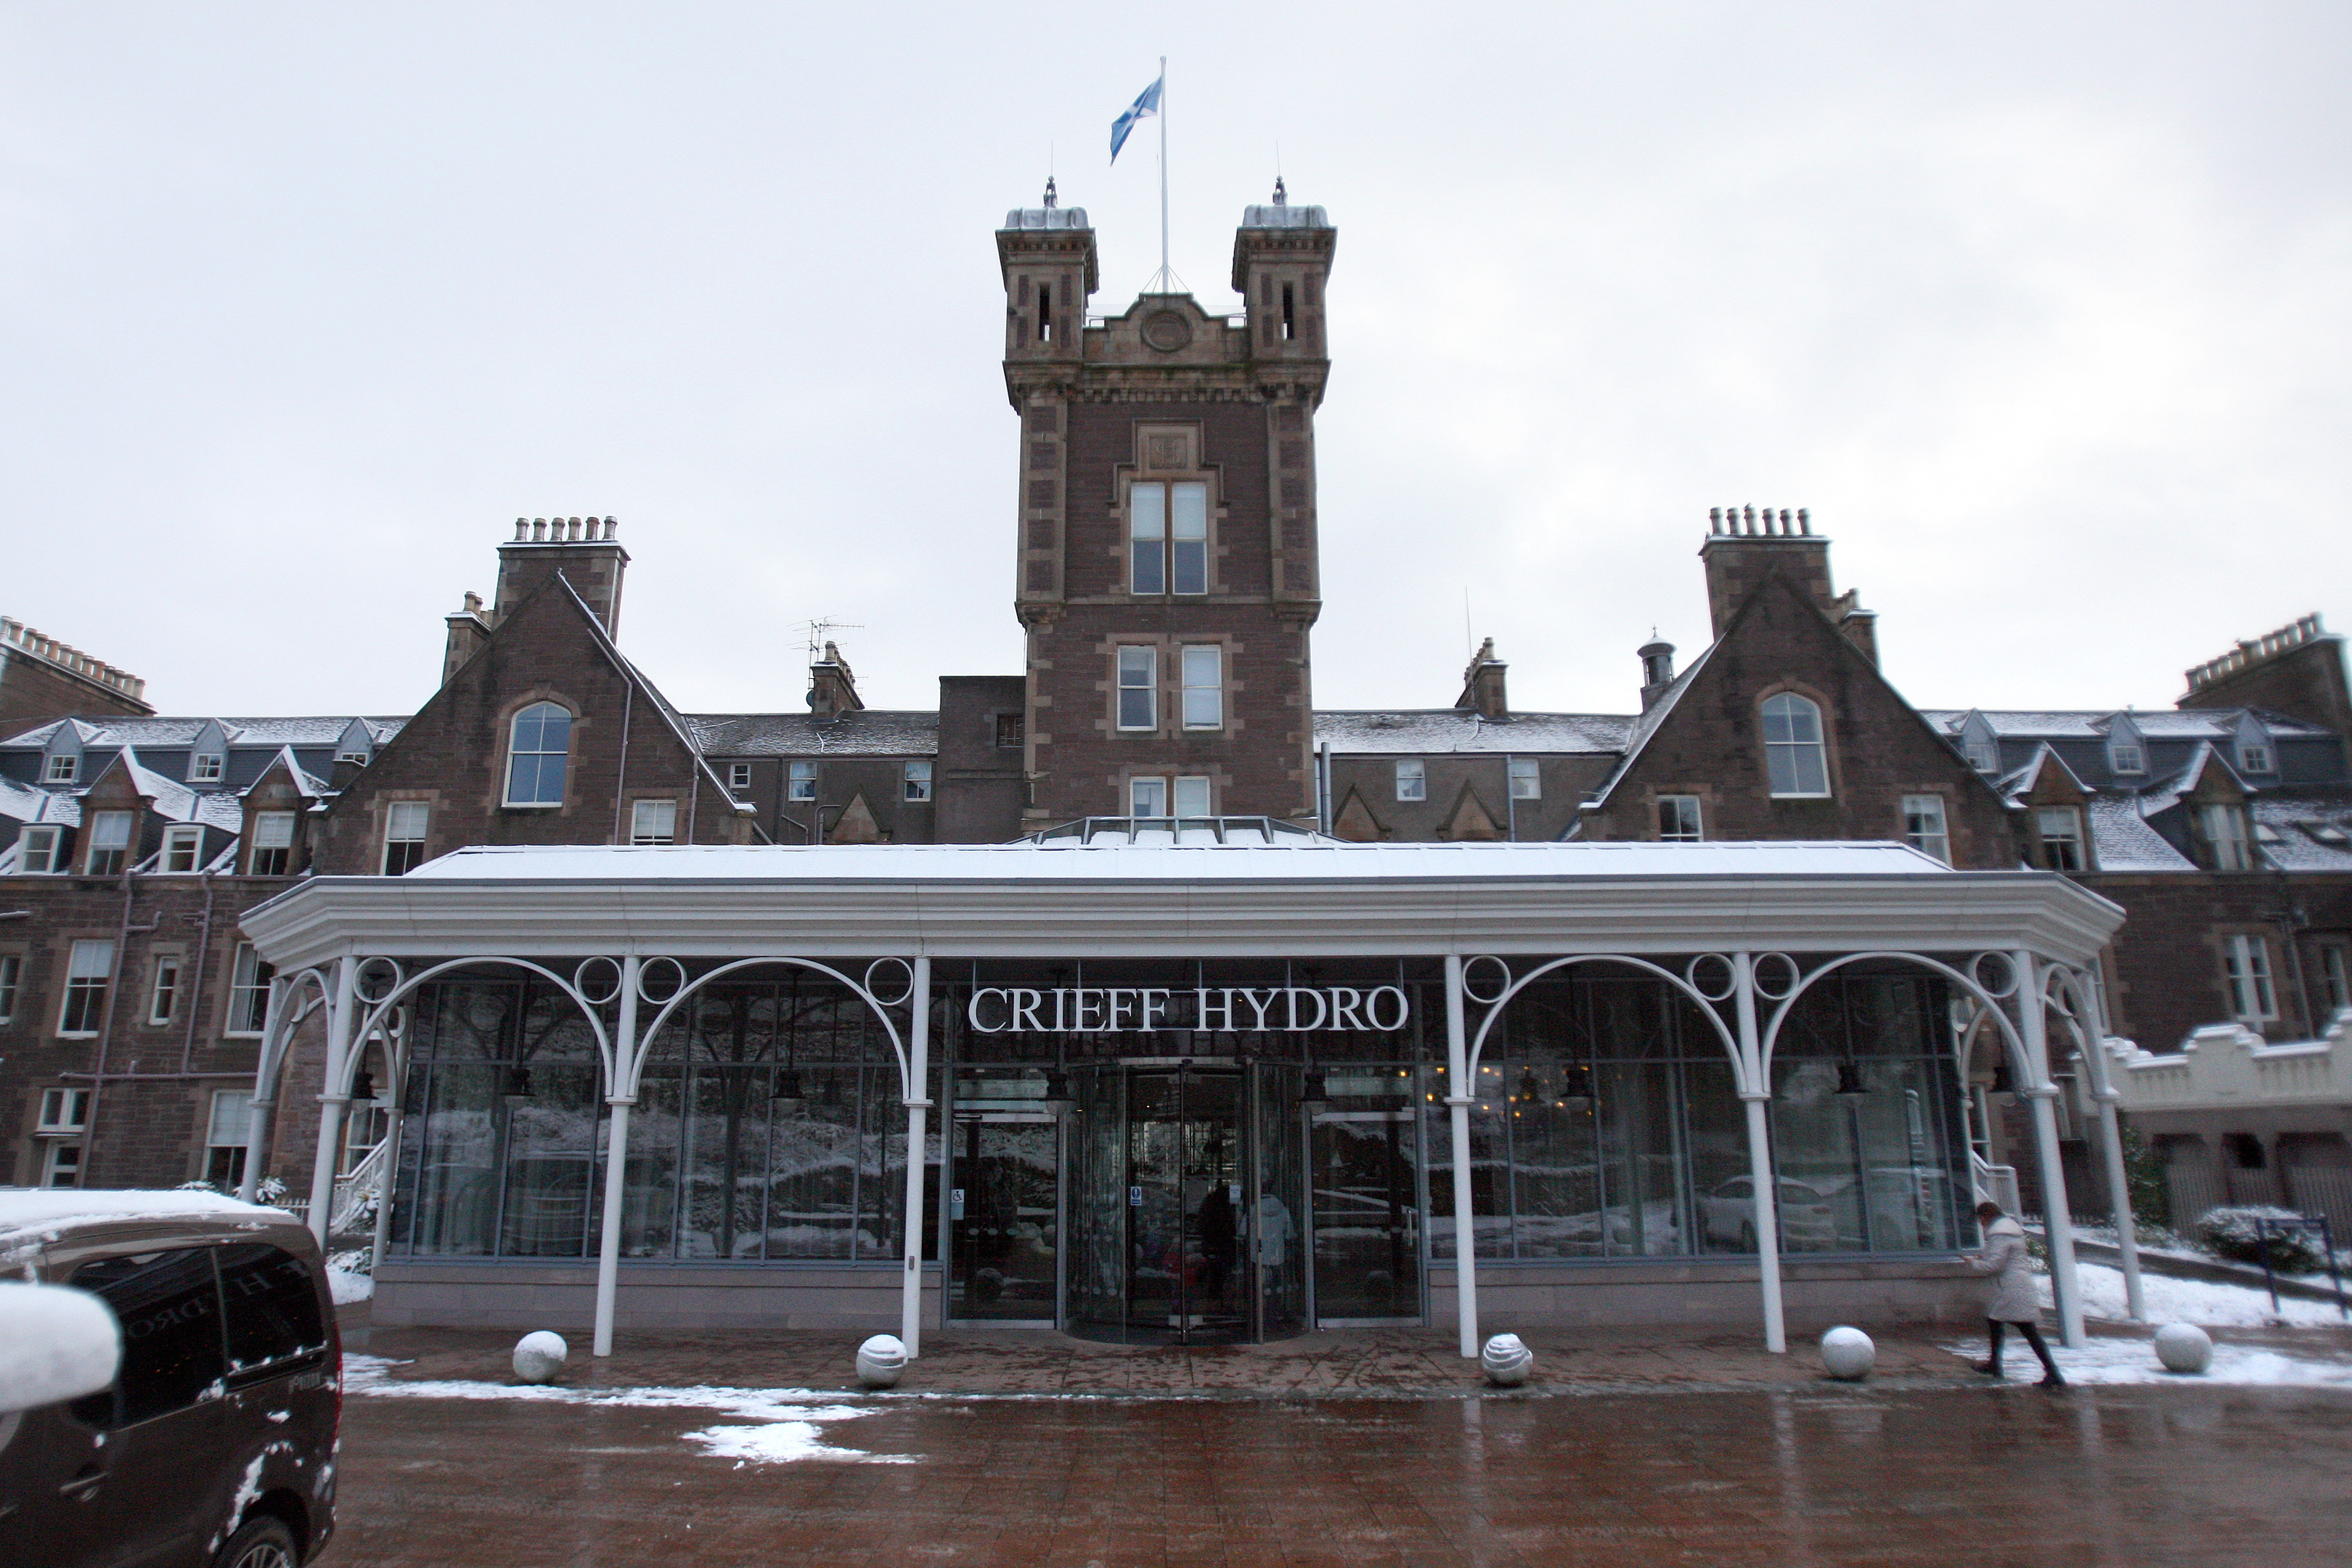 Crieff Hydro Hotel is one of many businesses which could be hit by a massive rates increase